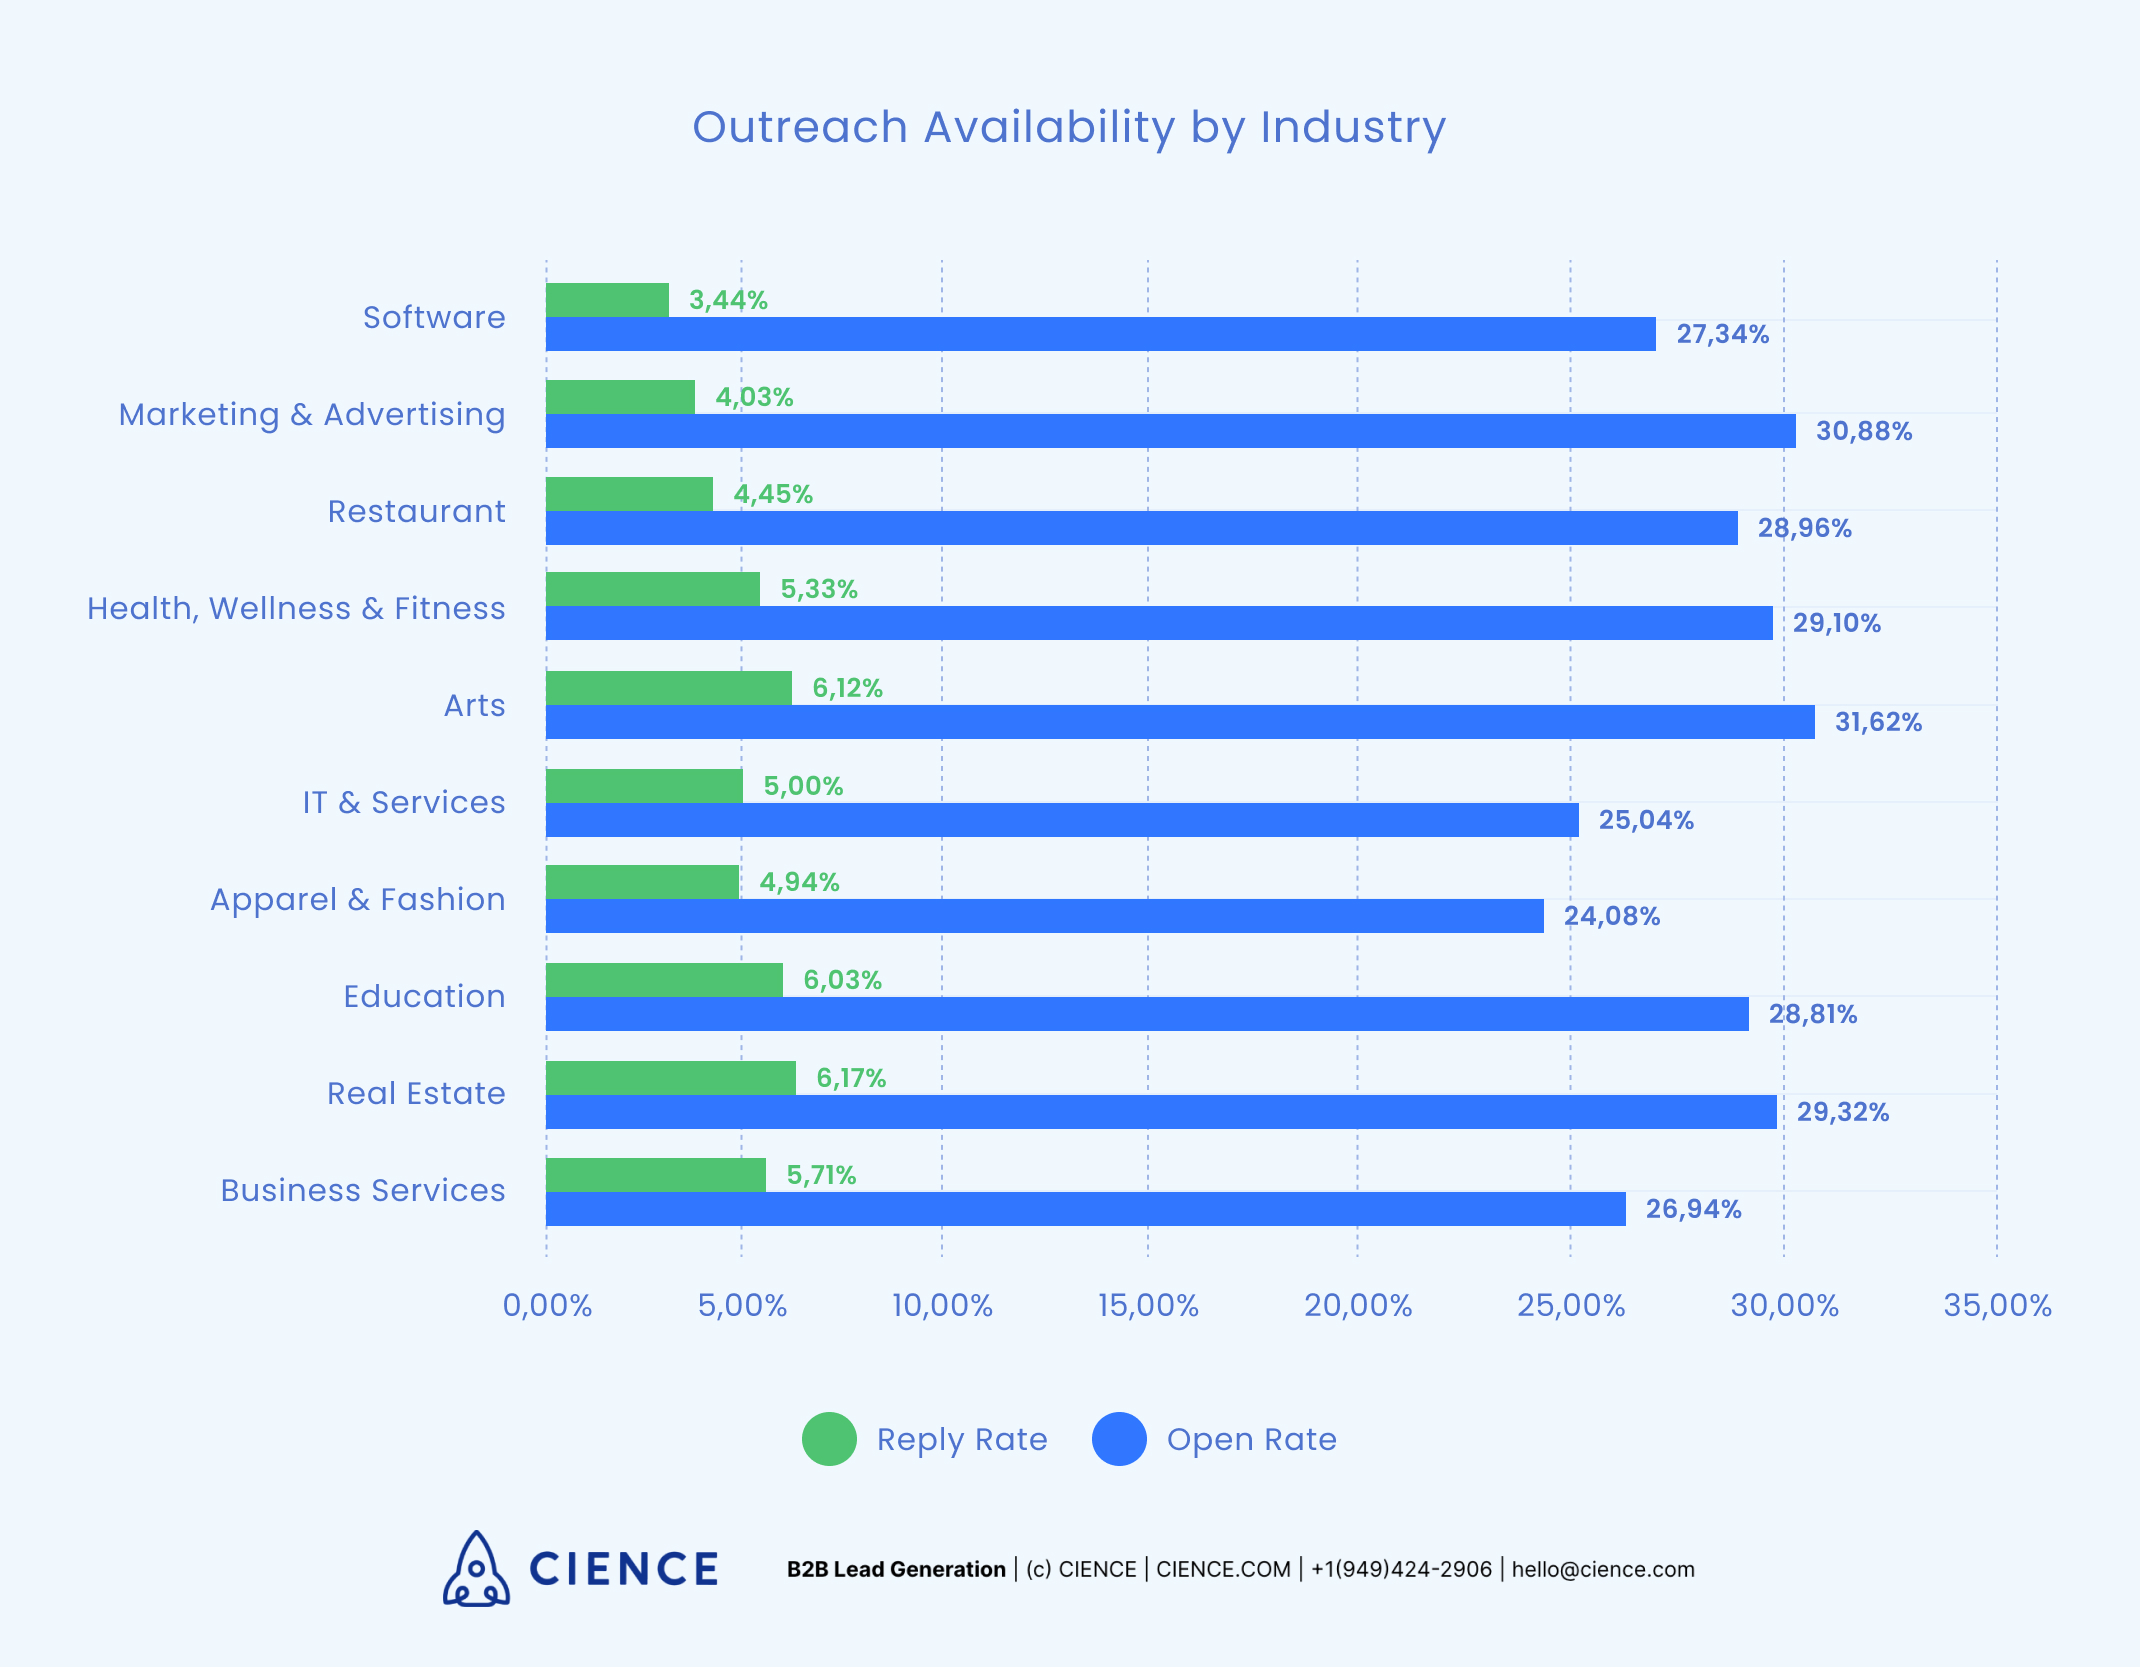 Least available industries to reach out to by email